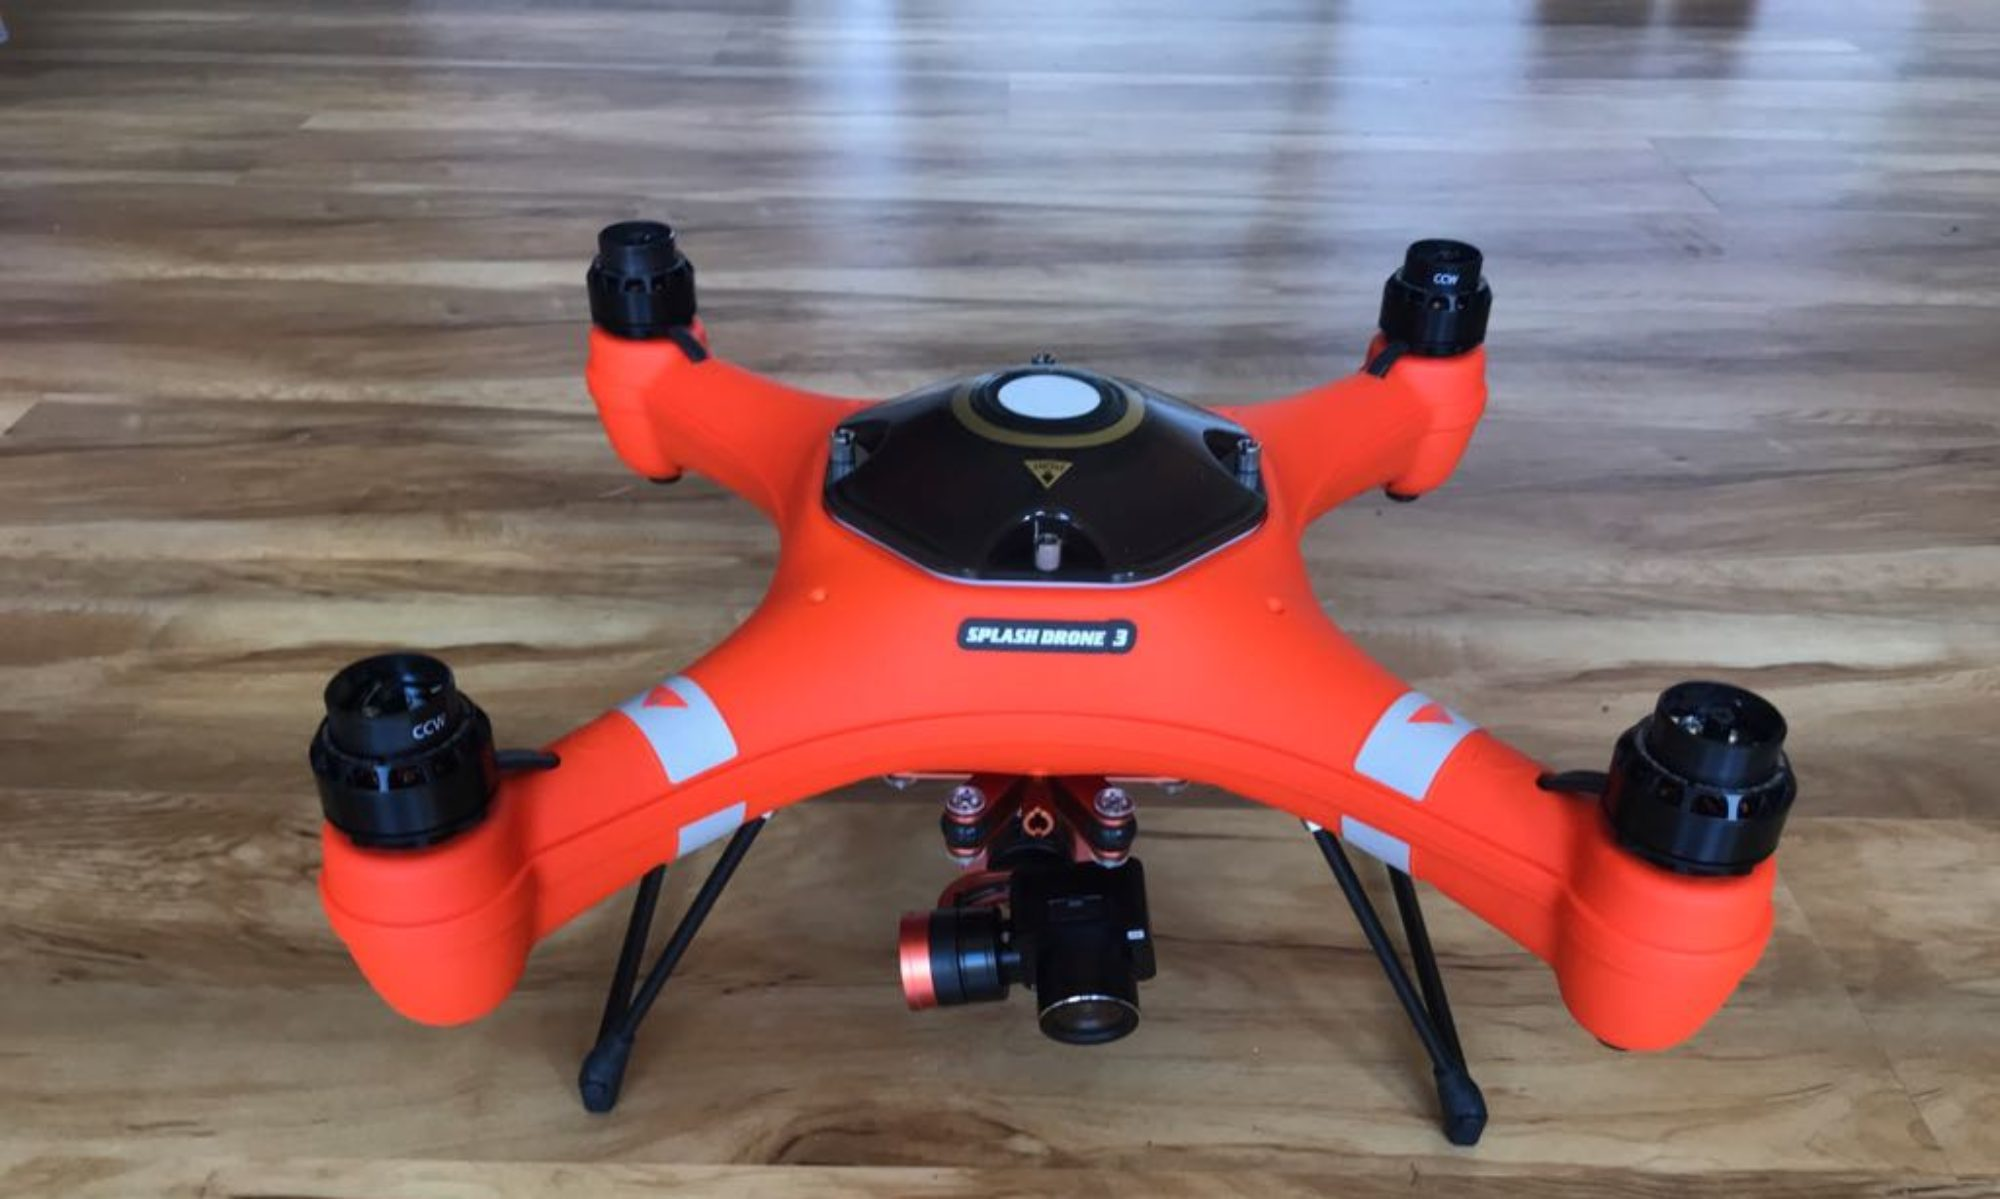 Hennie's Drone Repair and Training (Pty) Ltd